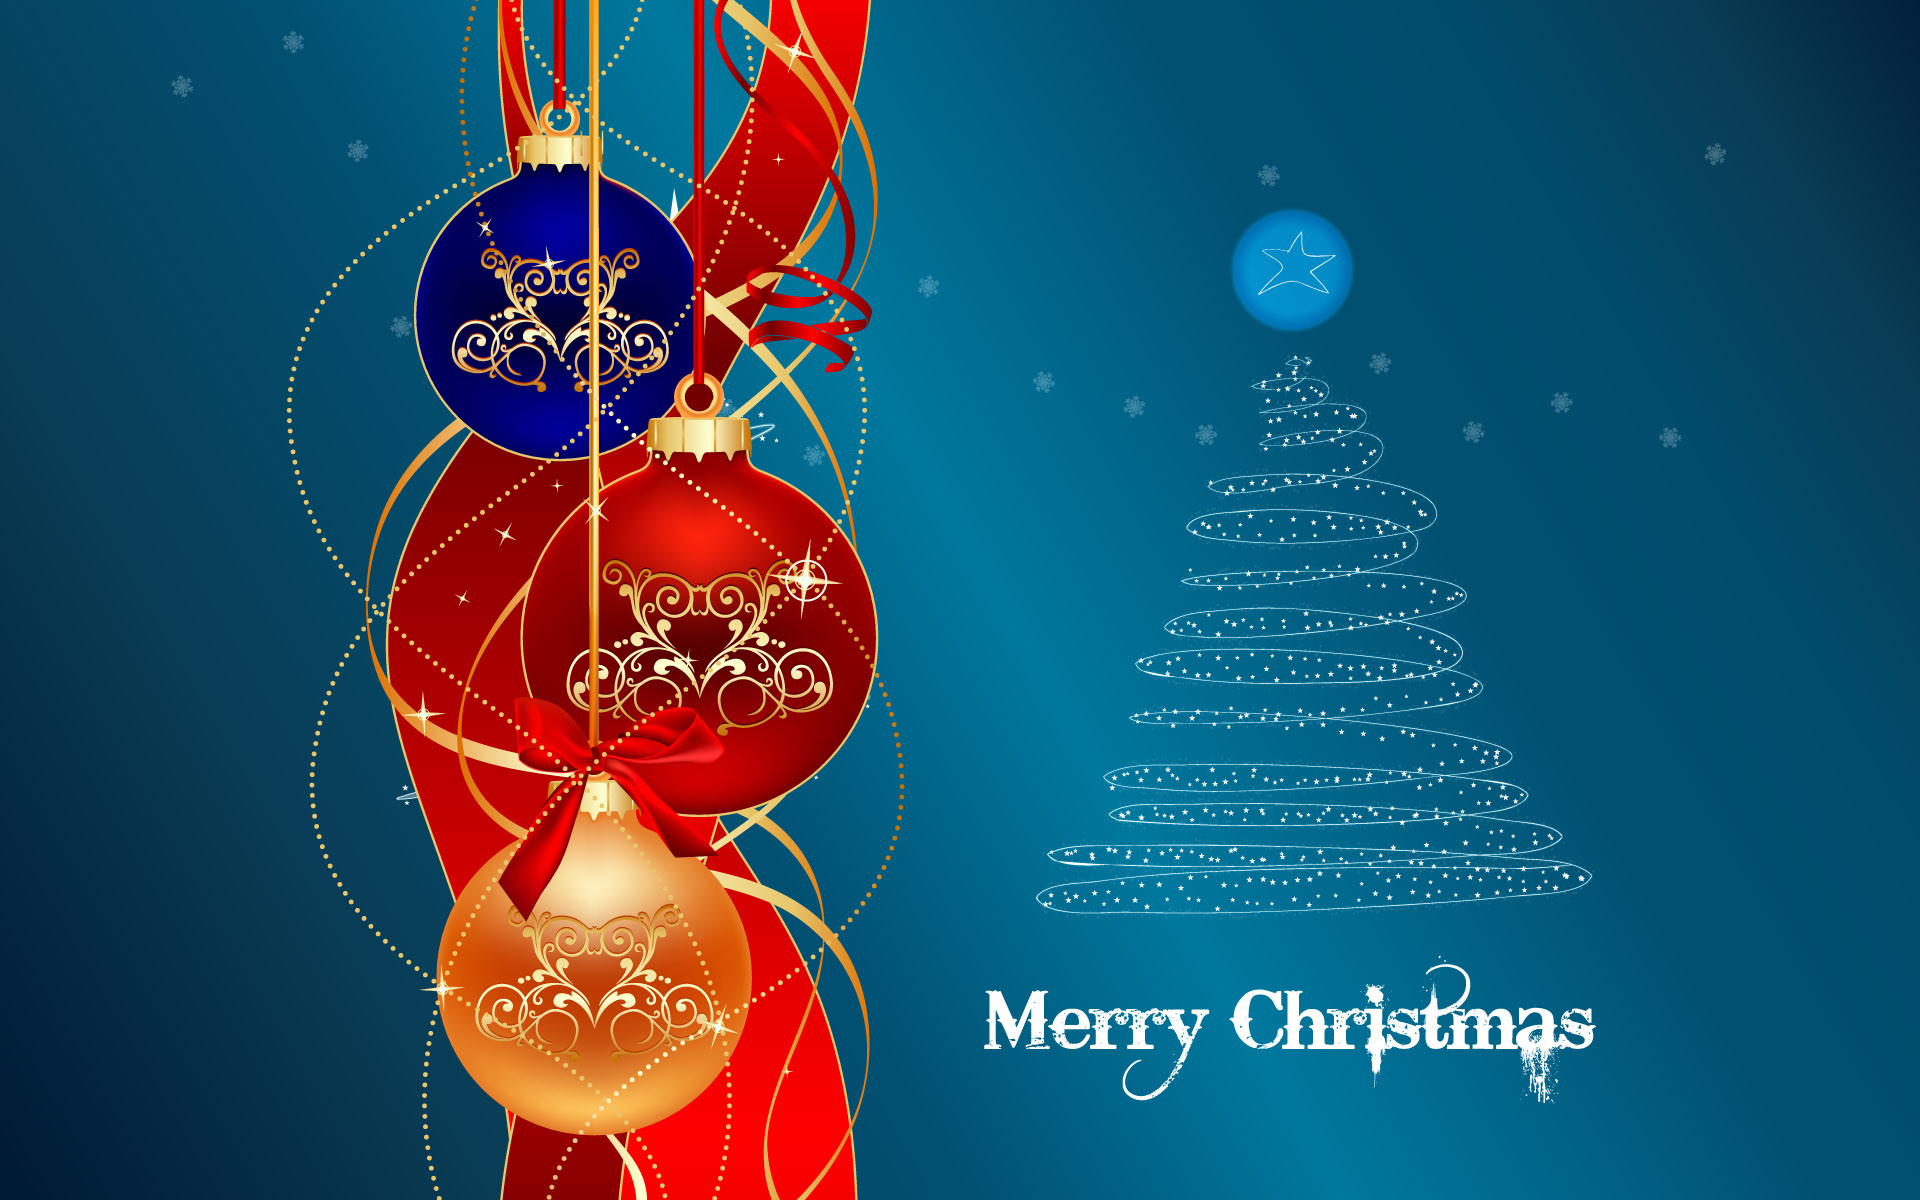 Christian photos,religious pictures, Jesus images,christmas wallpapers .